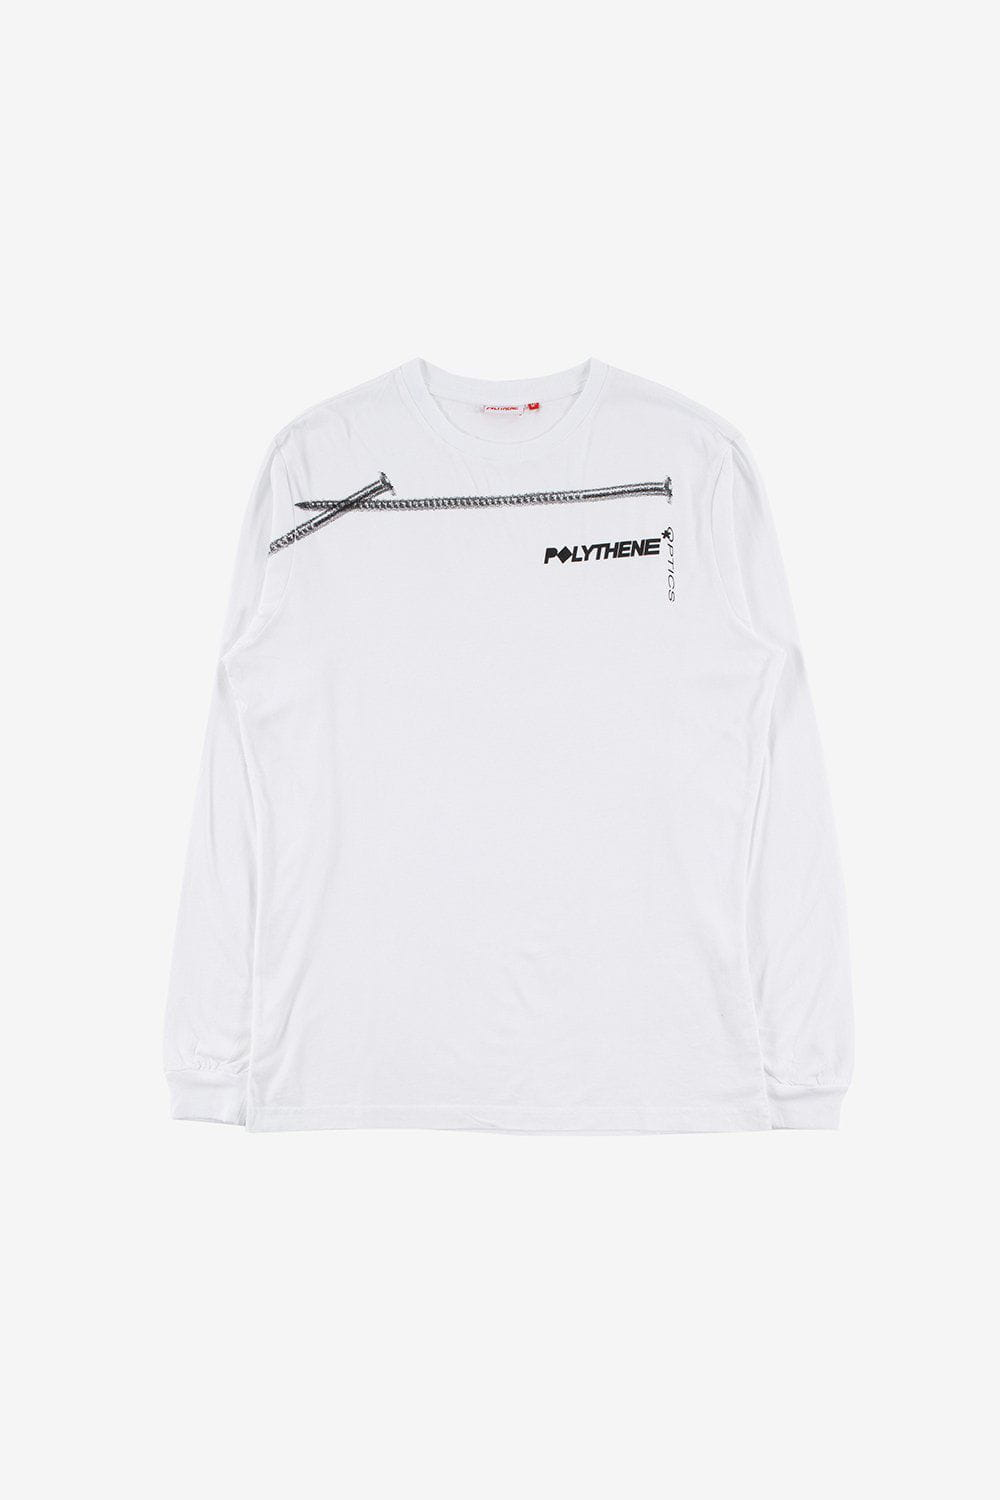 Polythene Optics Apparel Nails Long Sleeve T-Shirt White